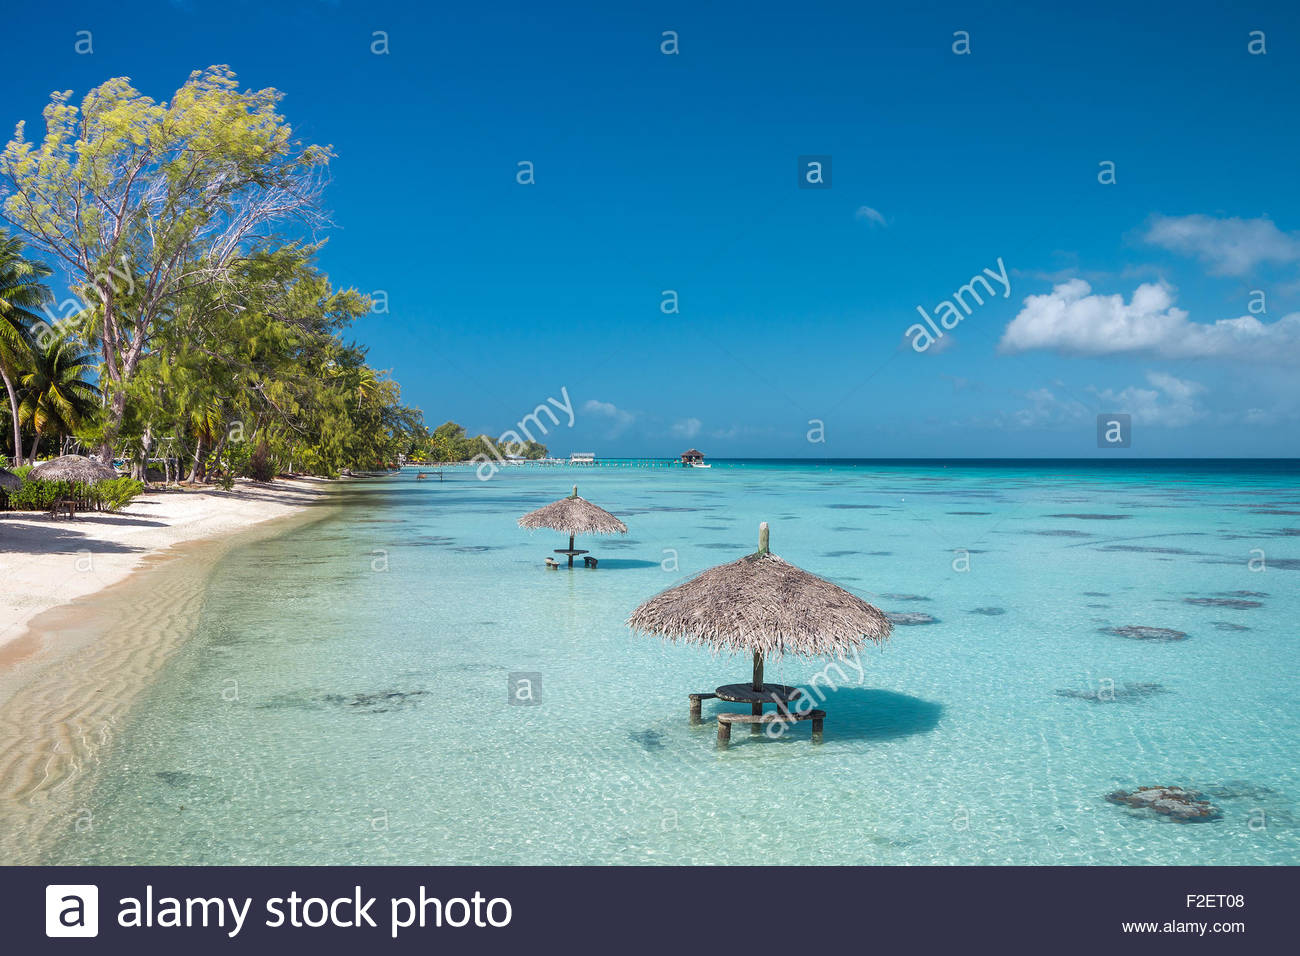 Fakarava (French Polynesia) Stock Photo